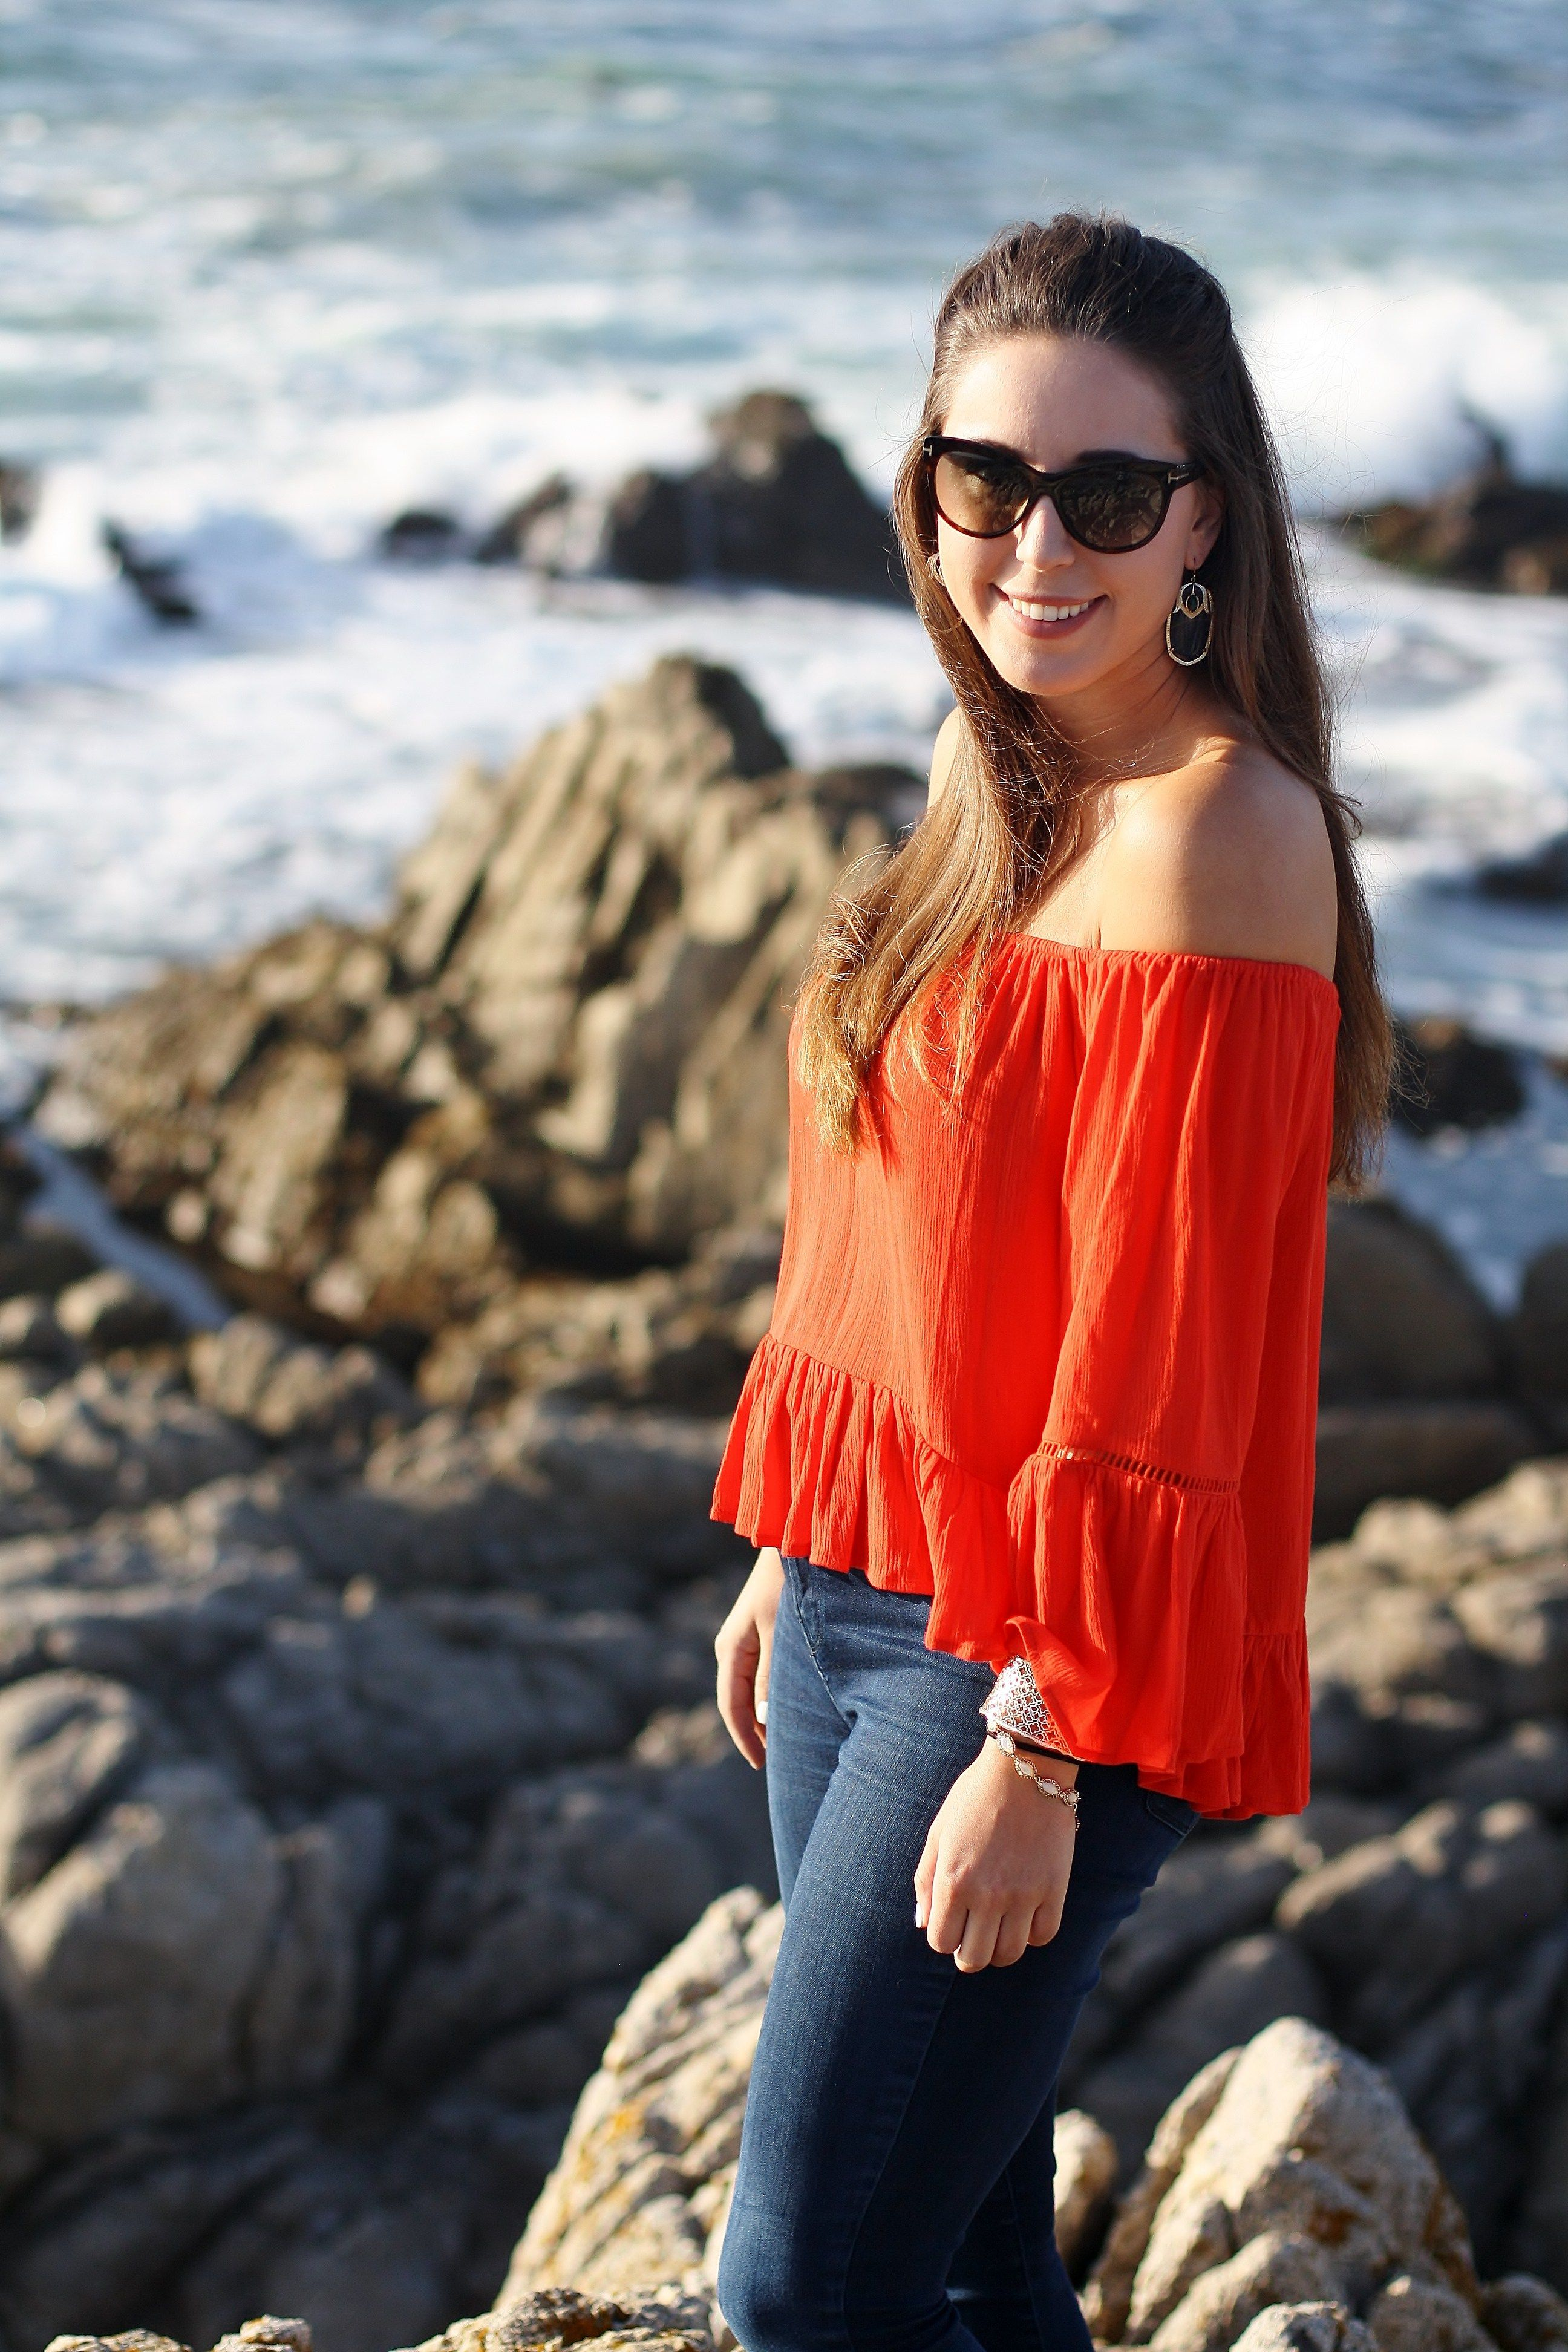 Pebble Beach The 17 Mile Drive Review Travel Blogger Fashion Style Wander Off Shoulder Summer